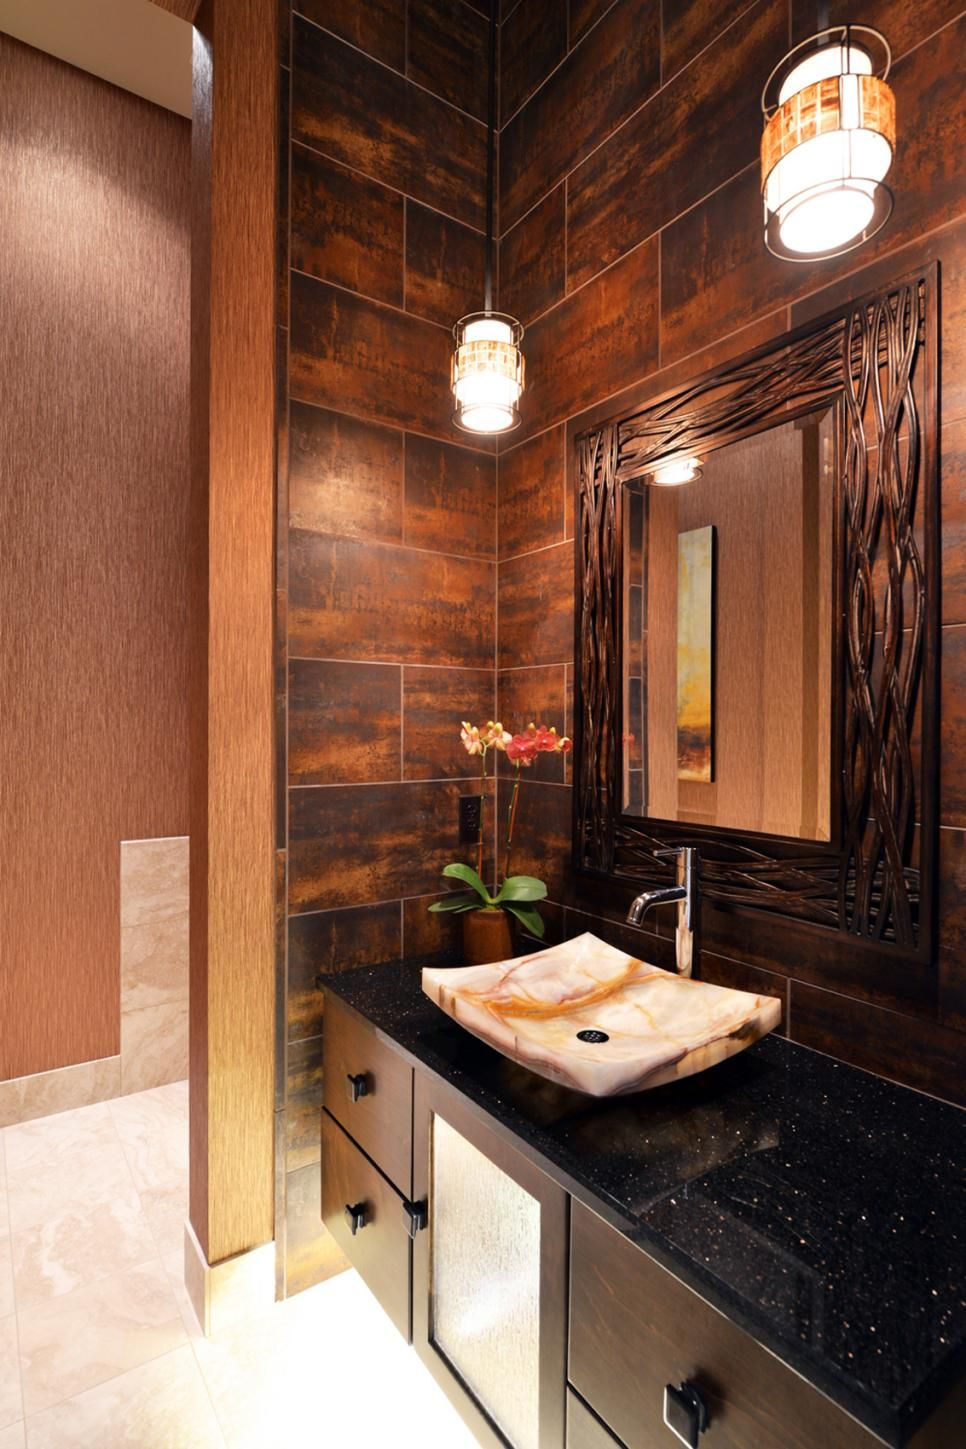 Rich Wood Panelled Rooms: Gorgeous Brown Tile Resembles The Look Of Wood On The